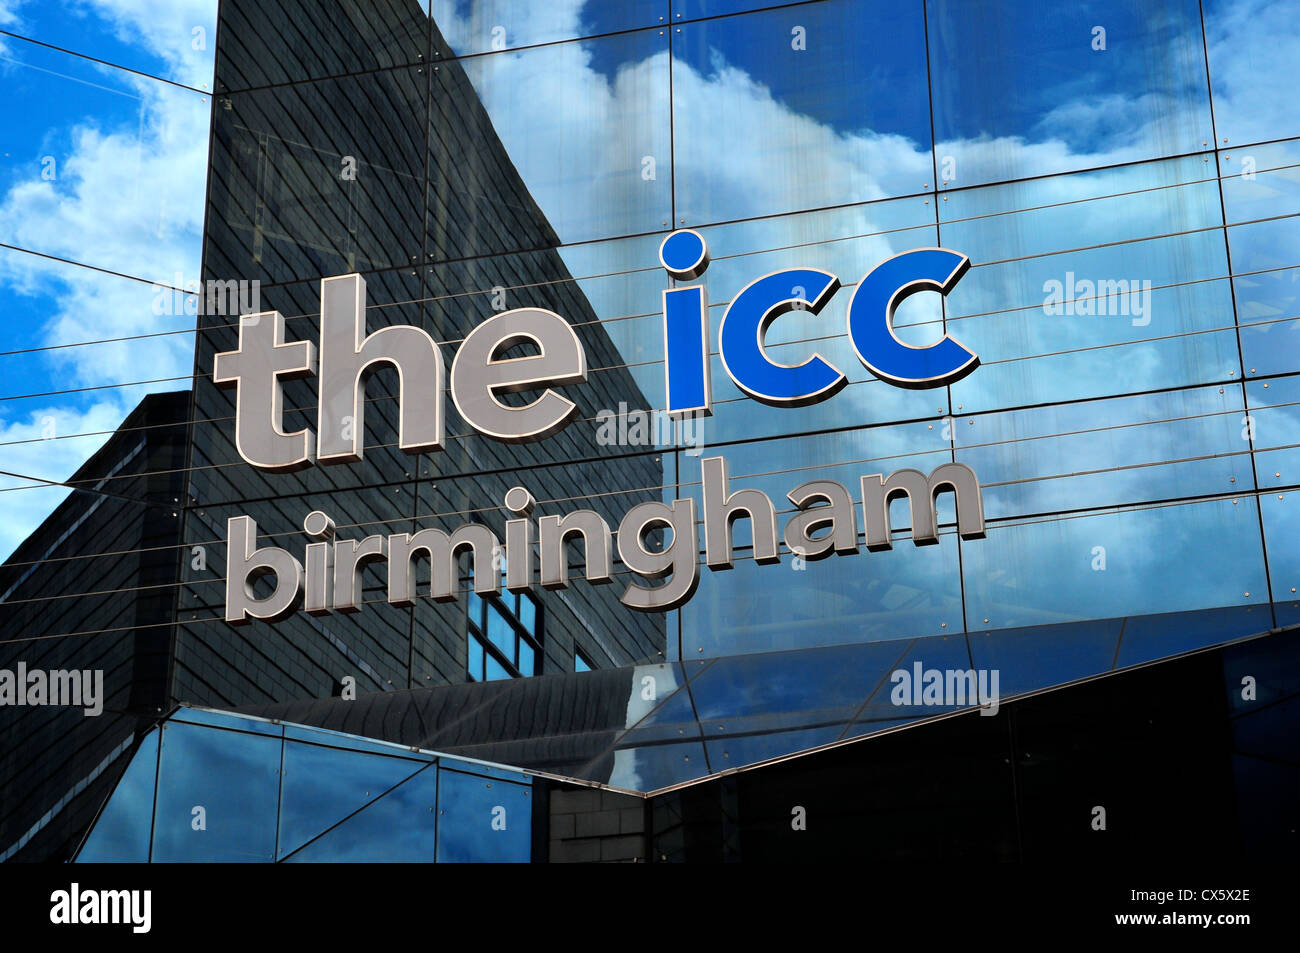 ICC conference centre in Birmingham, England, UK - Stock Image